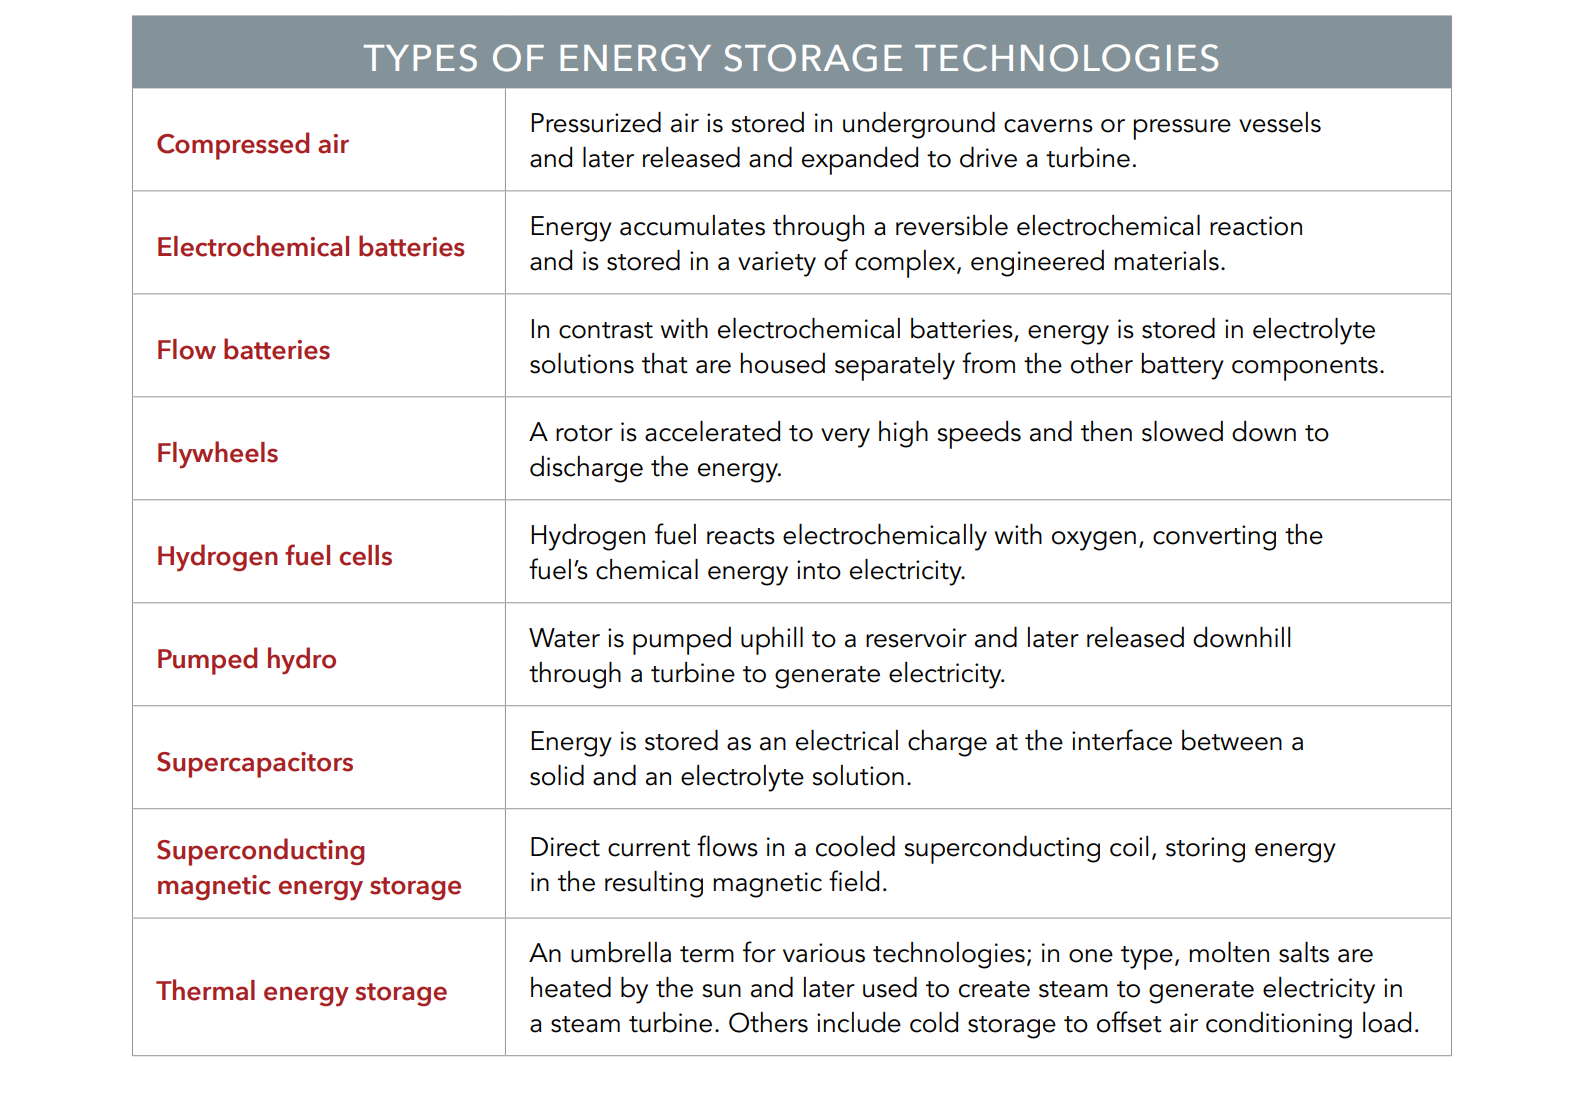 Energy Storage Is The Job Creation Opportunity Of The Future -- Now